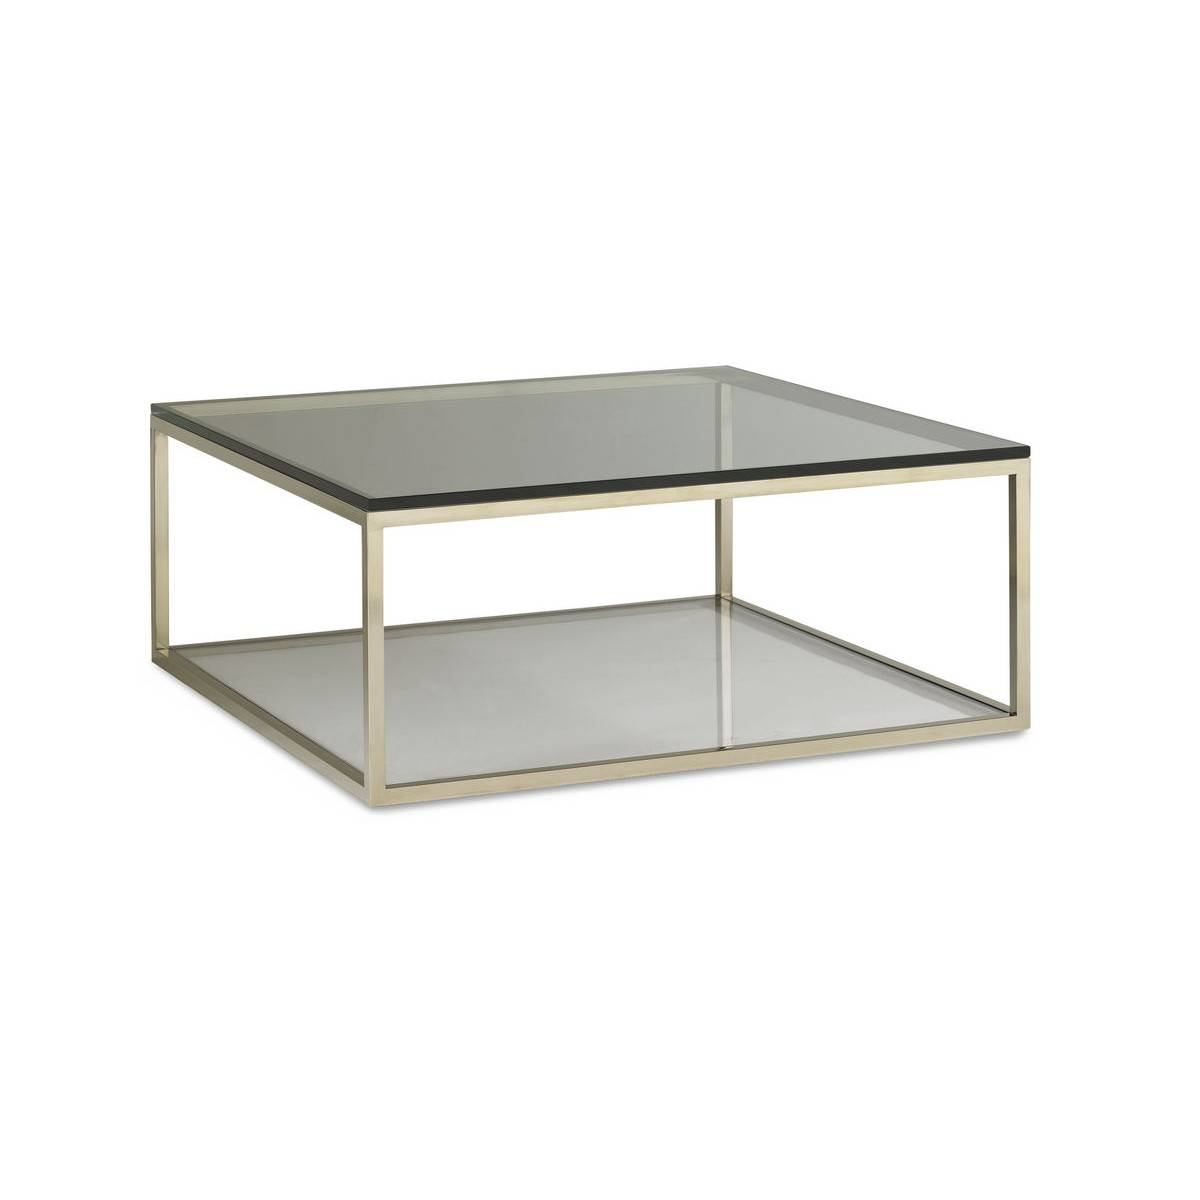 Glass Square Coffee Table - Jericho Mafjar Project throughout Wood Chrome Coffee Tables (Image 14 of 30)